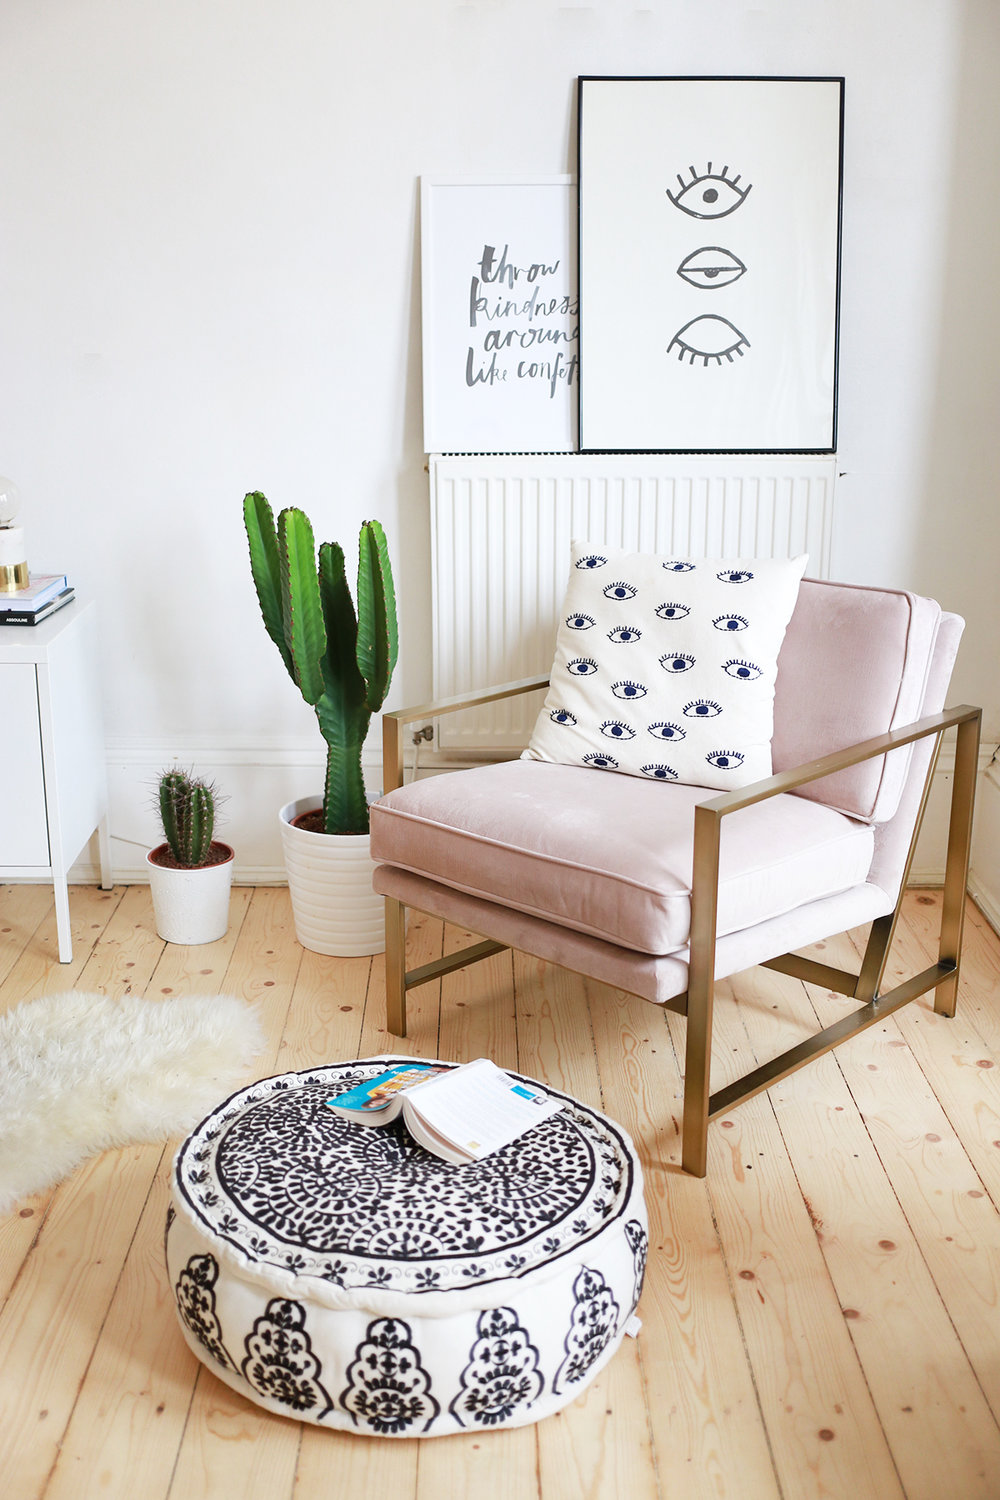 KEEPING A CLEAN HOUSE: 7 DAILY HABITS - This Wild Home